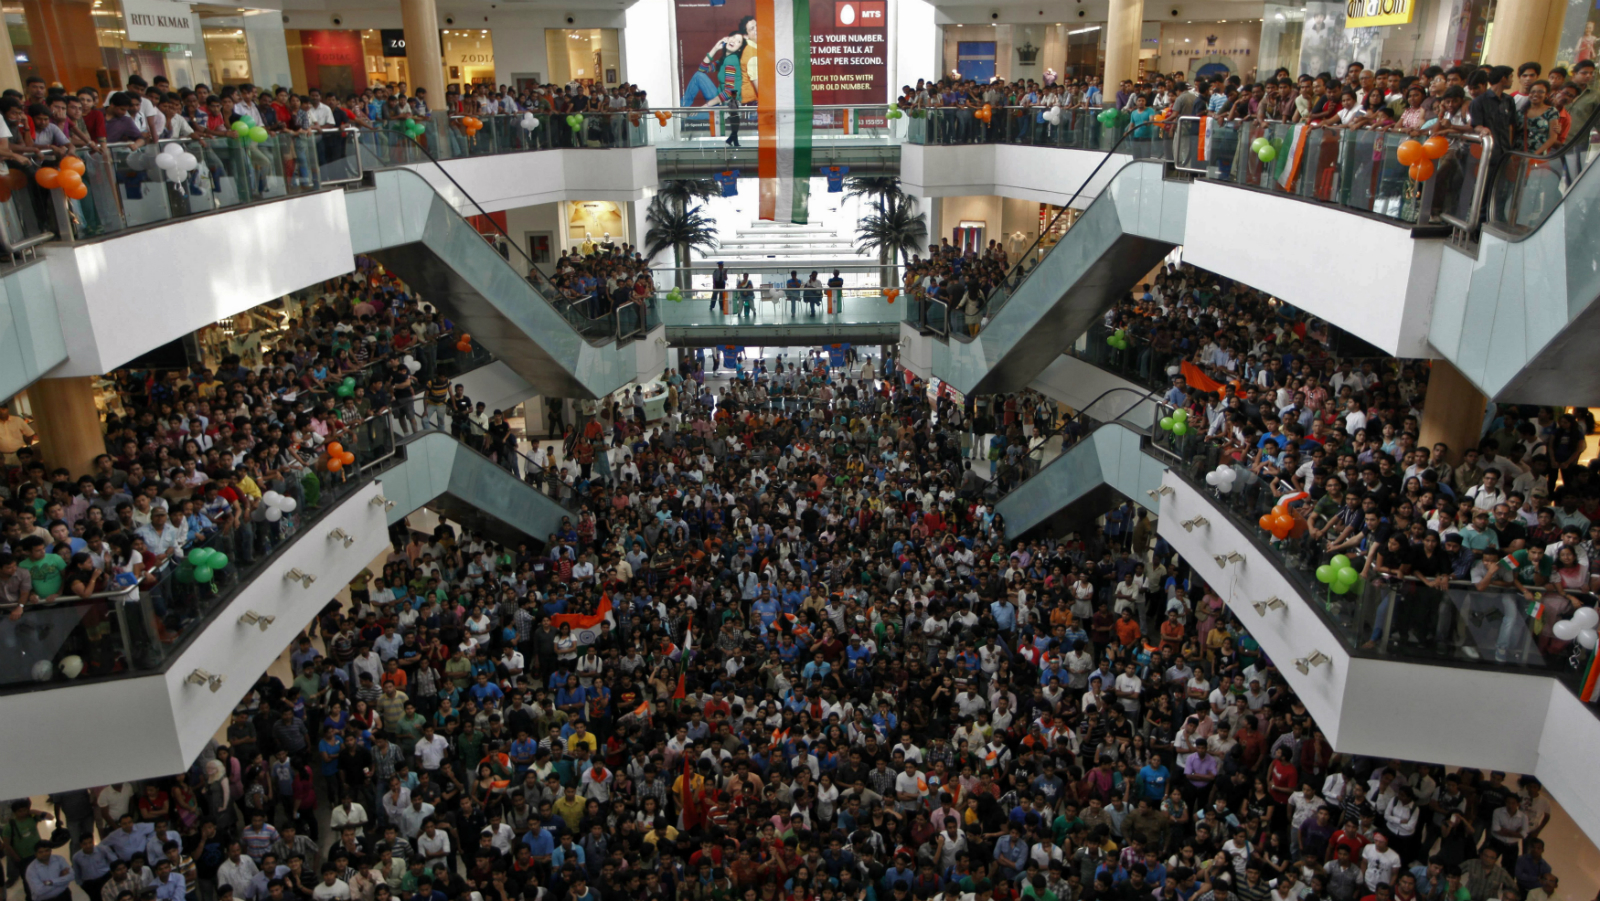 Cricket fans watch the ICC Cricket World Cup final match between India and Sri Lanka, on a big screen inside a shopping mall in Kolkata April 2, 2011.